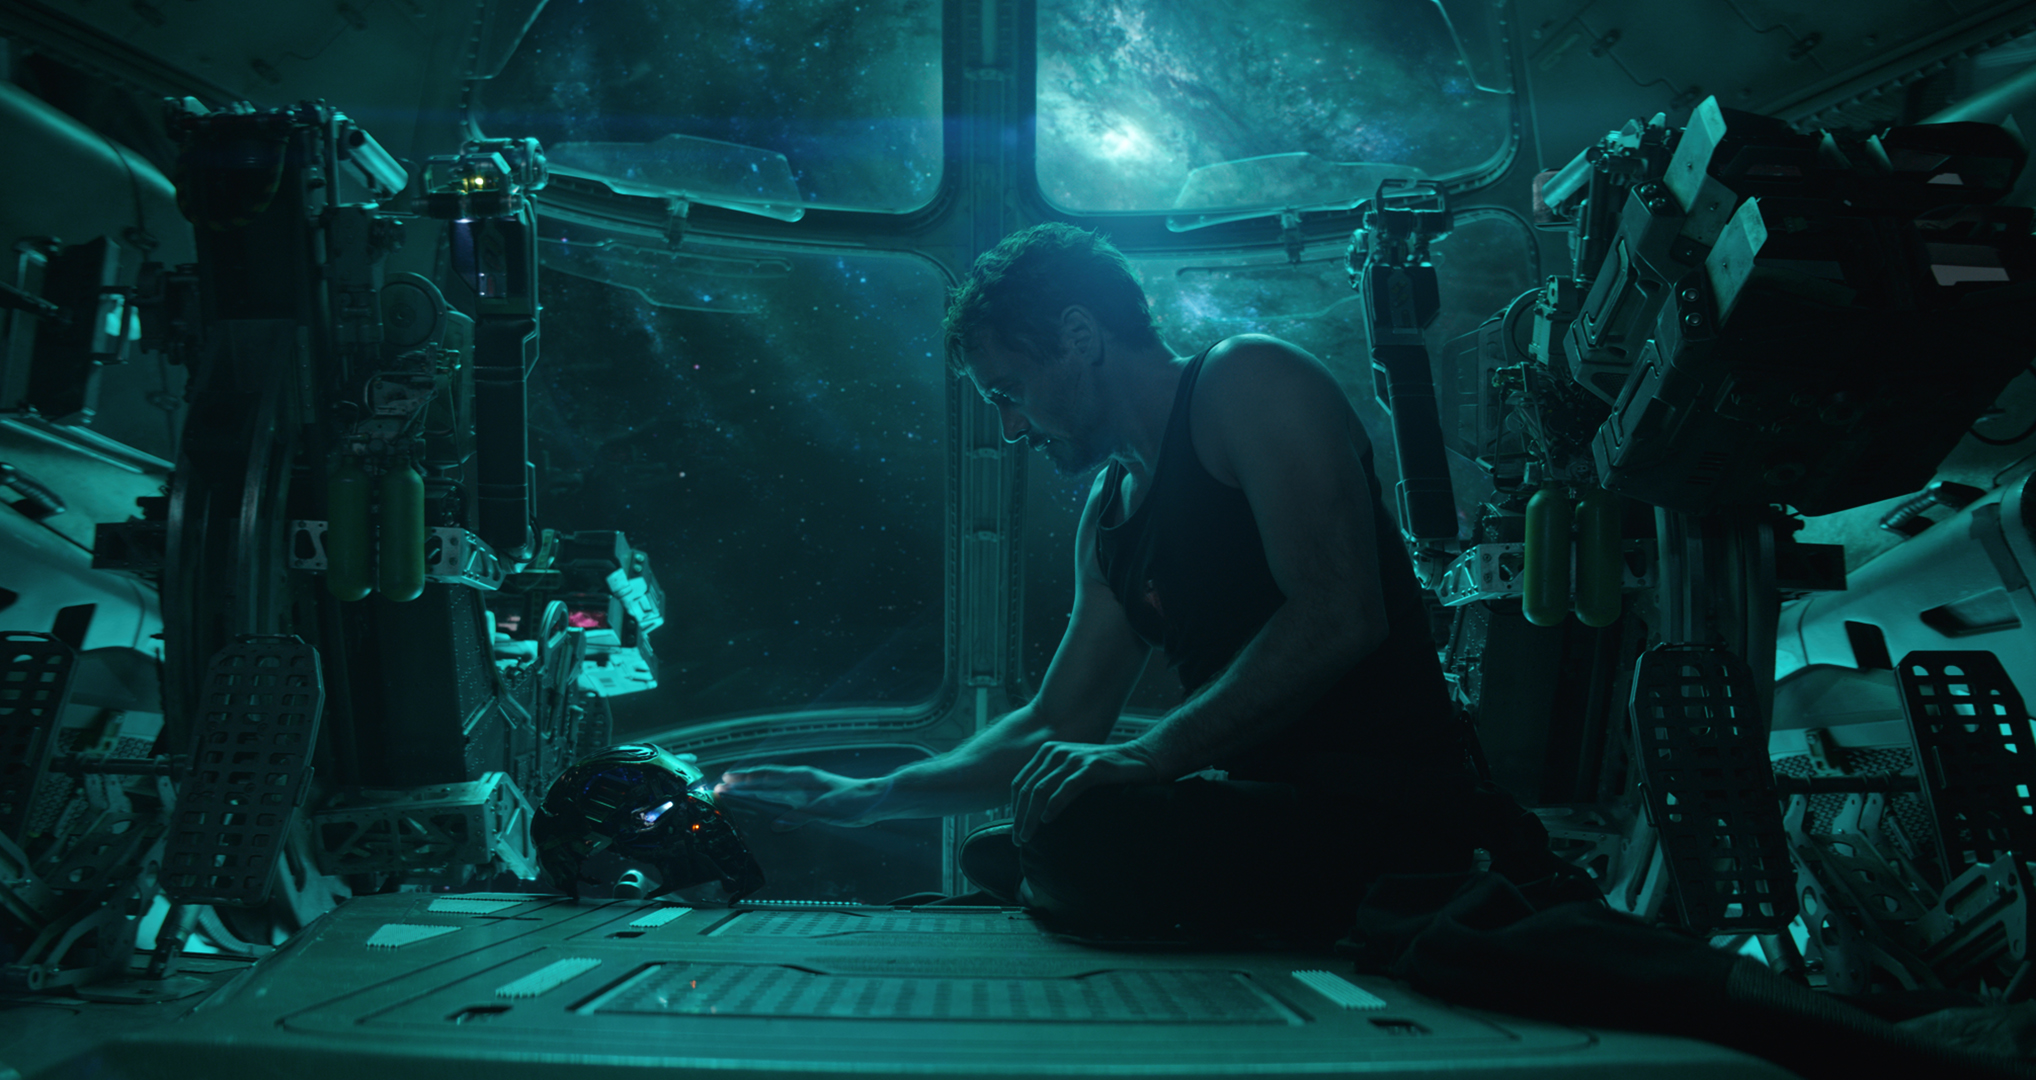 Marvel debuts new Avengers: Endgame footage during the Super Bowl